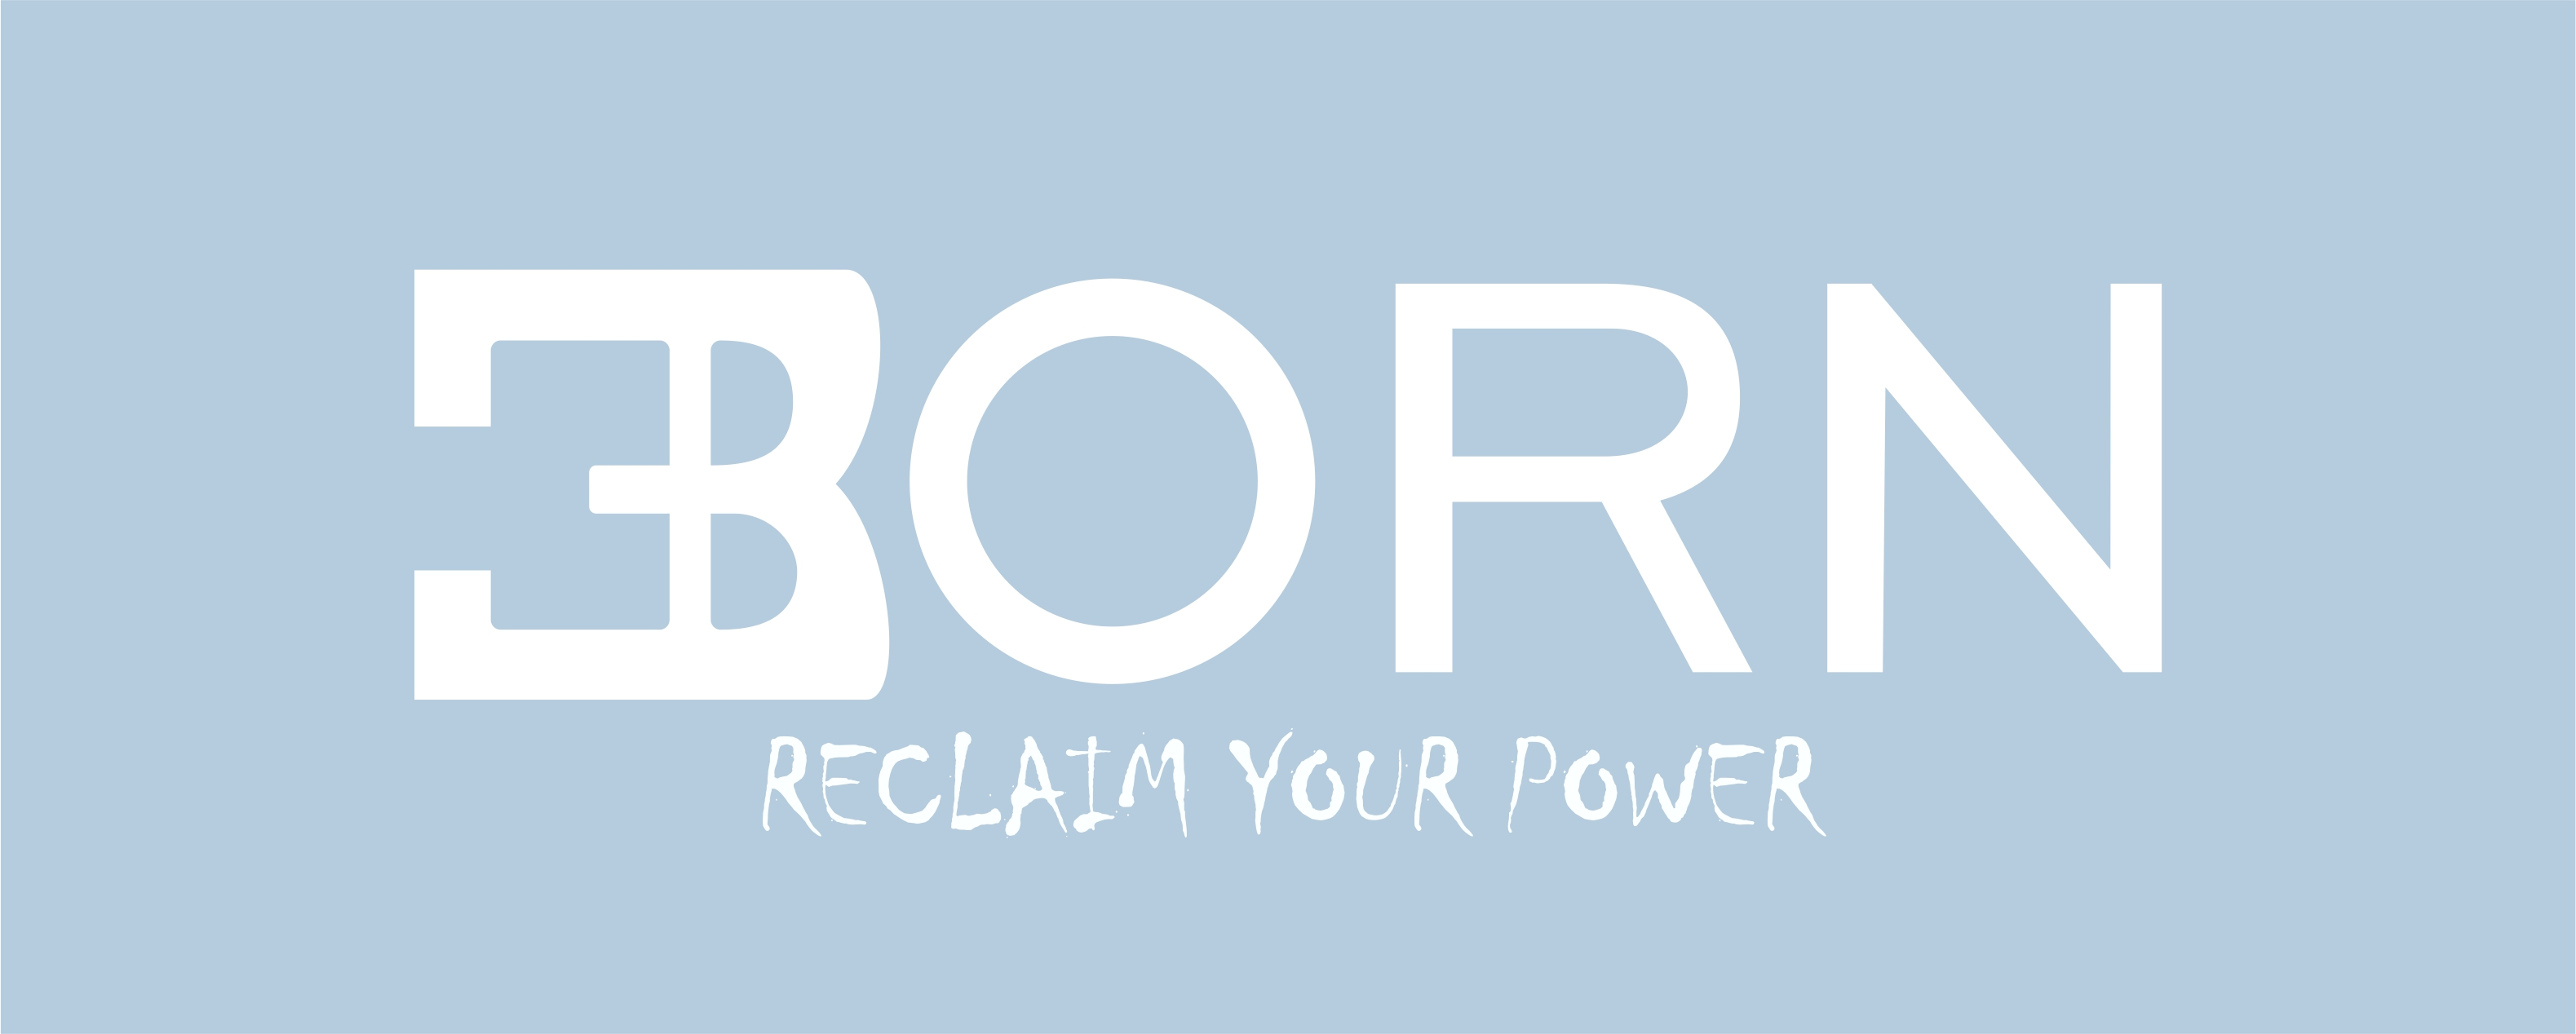 3BORN LOGO SLOGAN